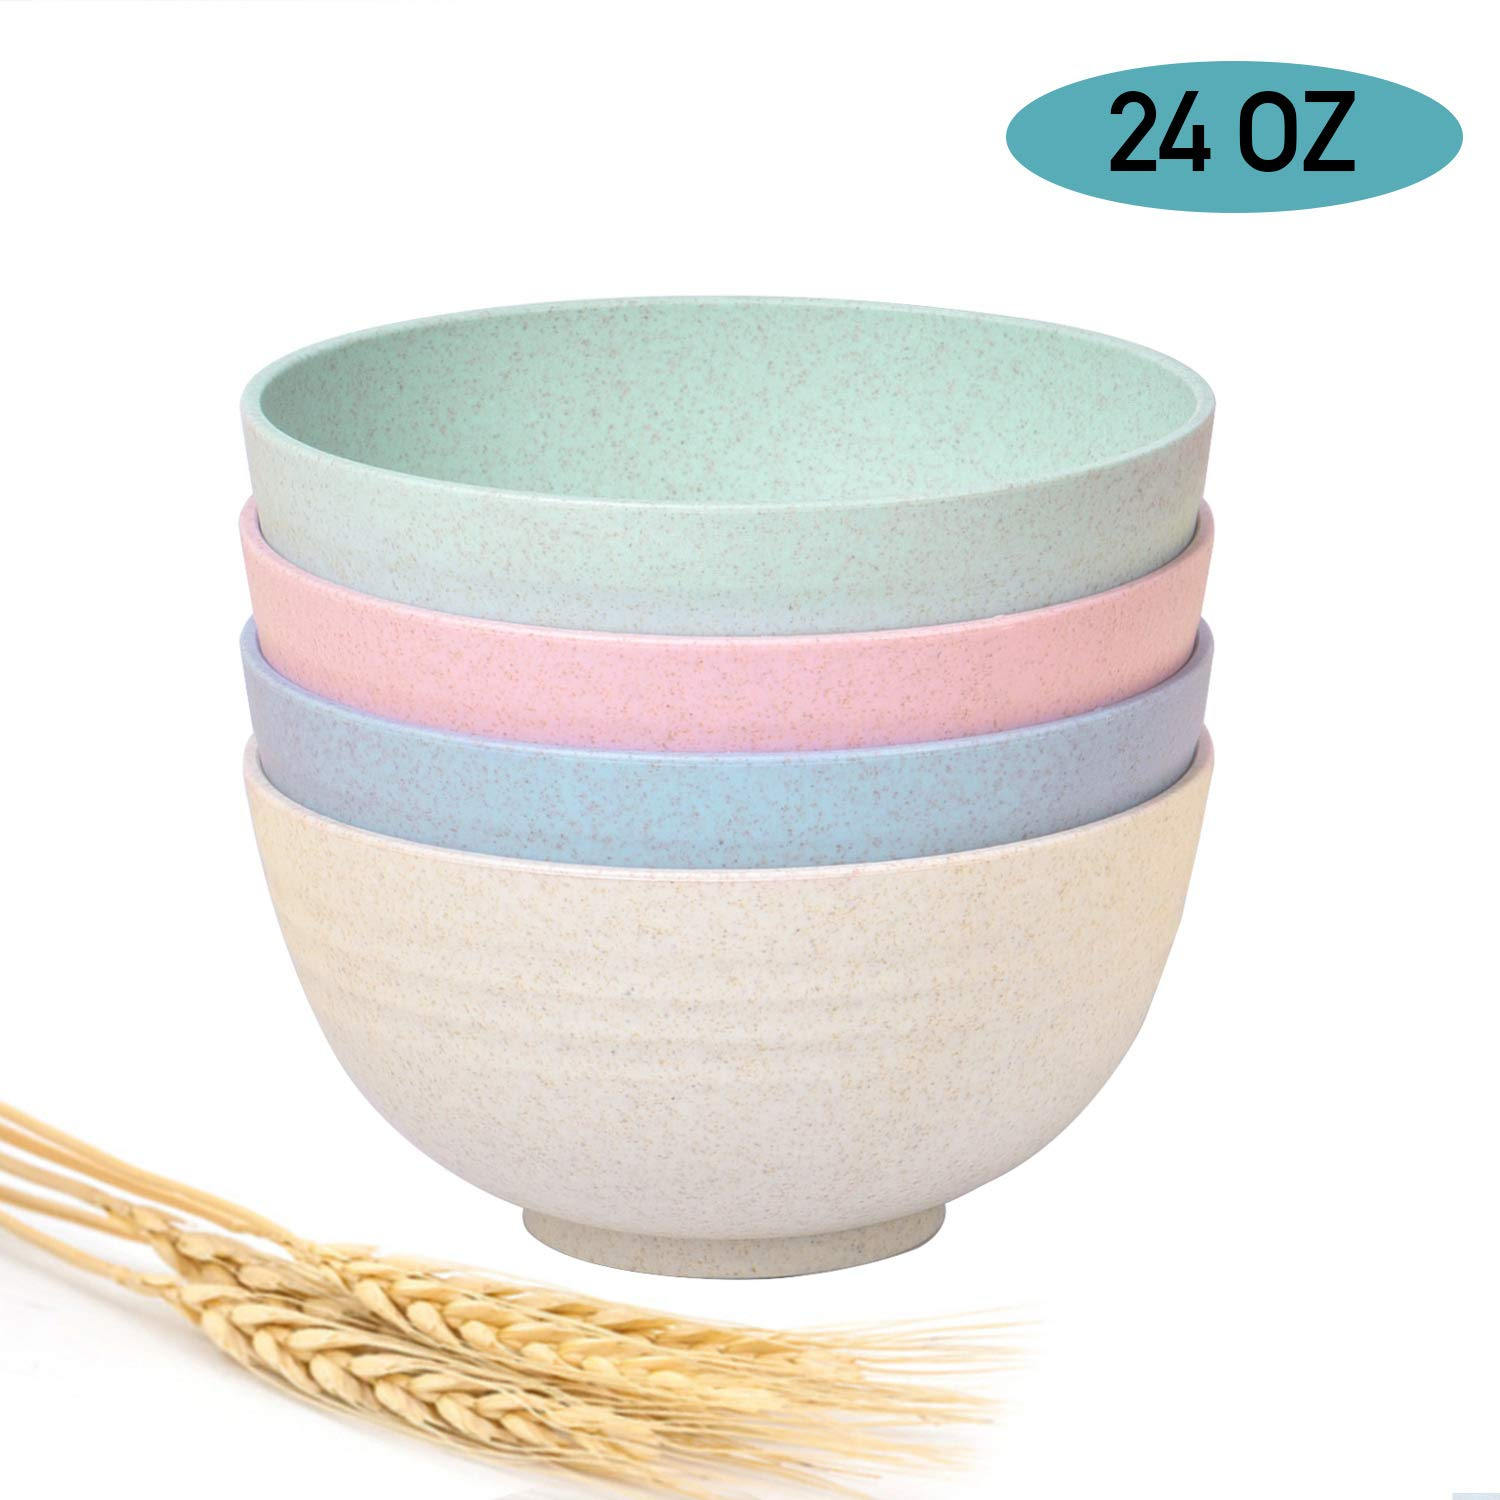 Shopwithgreen Unbreakable Cereal Bowls - 24 OZ Wheat Straw Fiber Lightweight Bowl Sets 4 - Dishwasher & Microwave Safe - for Children,Rice,Soup Bowls